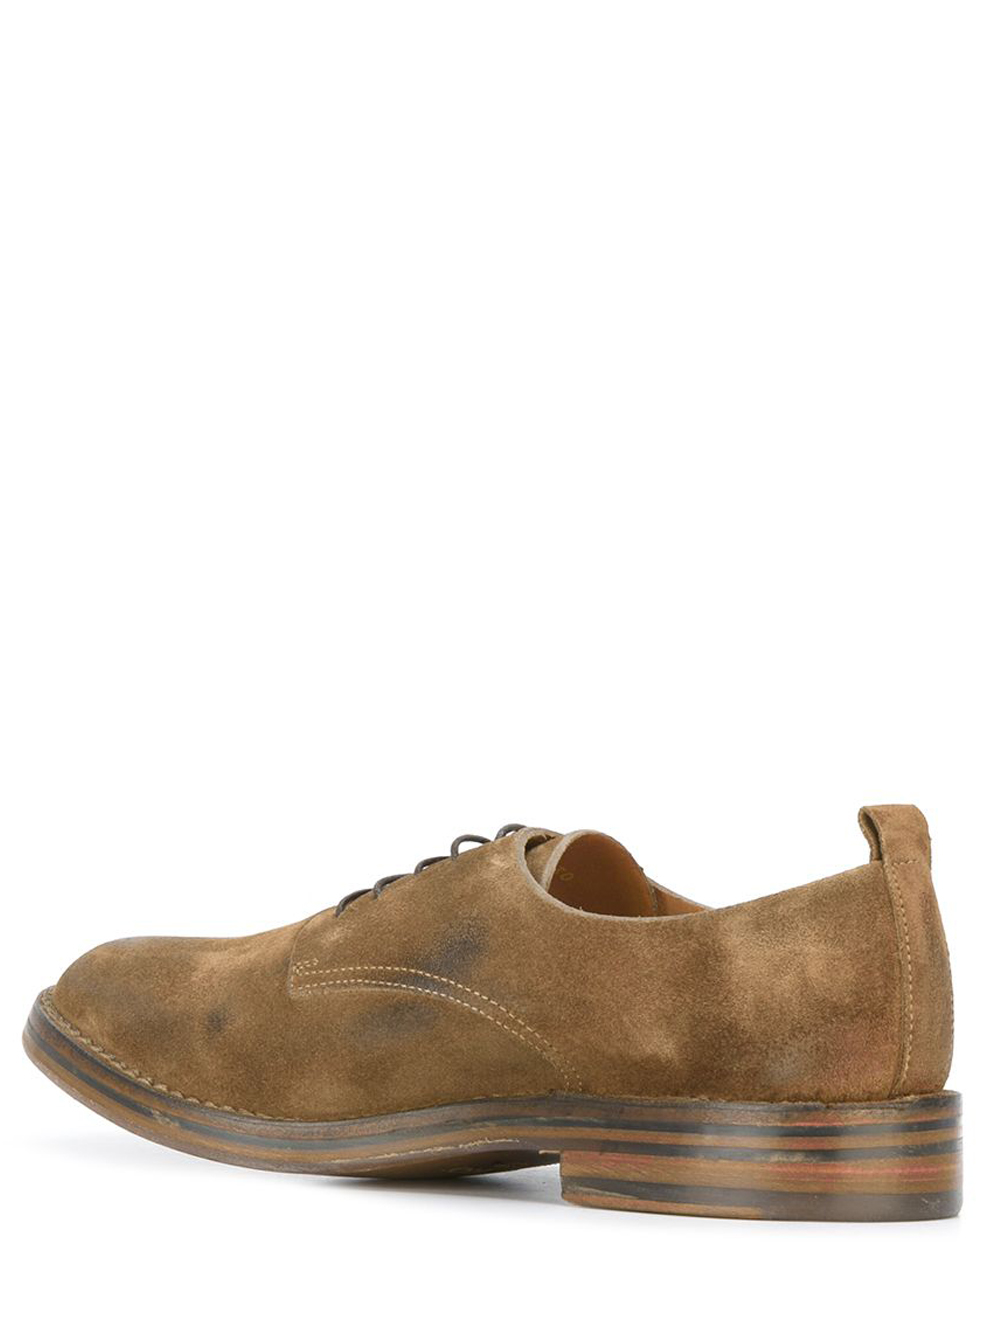 Buttero low top suede sneakers man brown BUTTERO | Laced Shoes | B6330GORH-UGTOBACCO